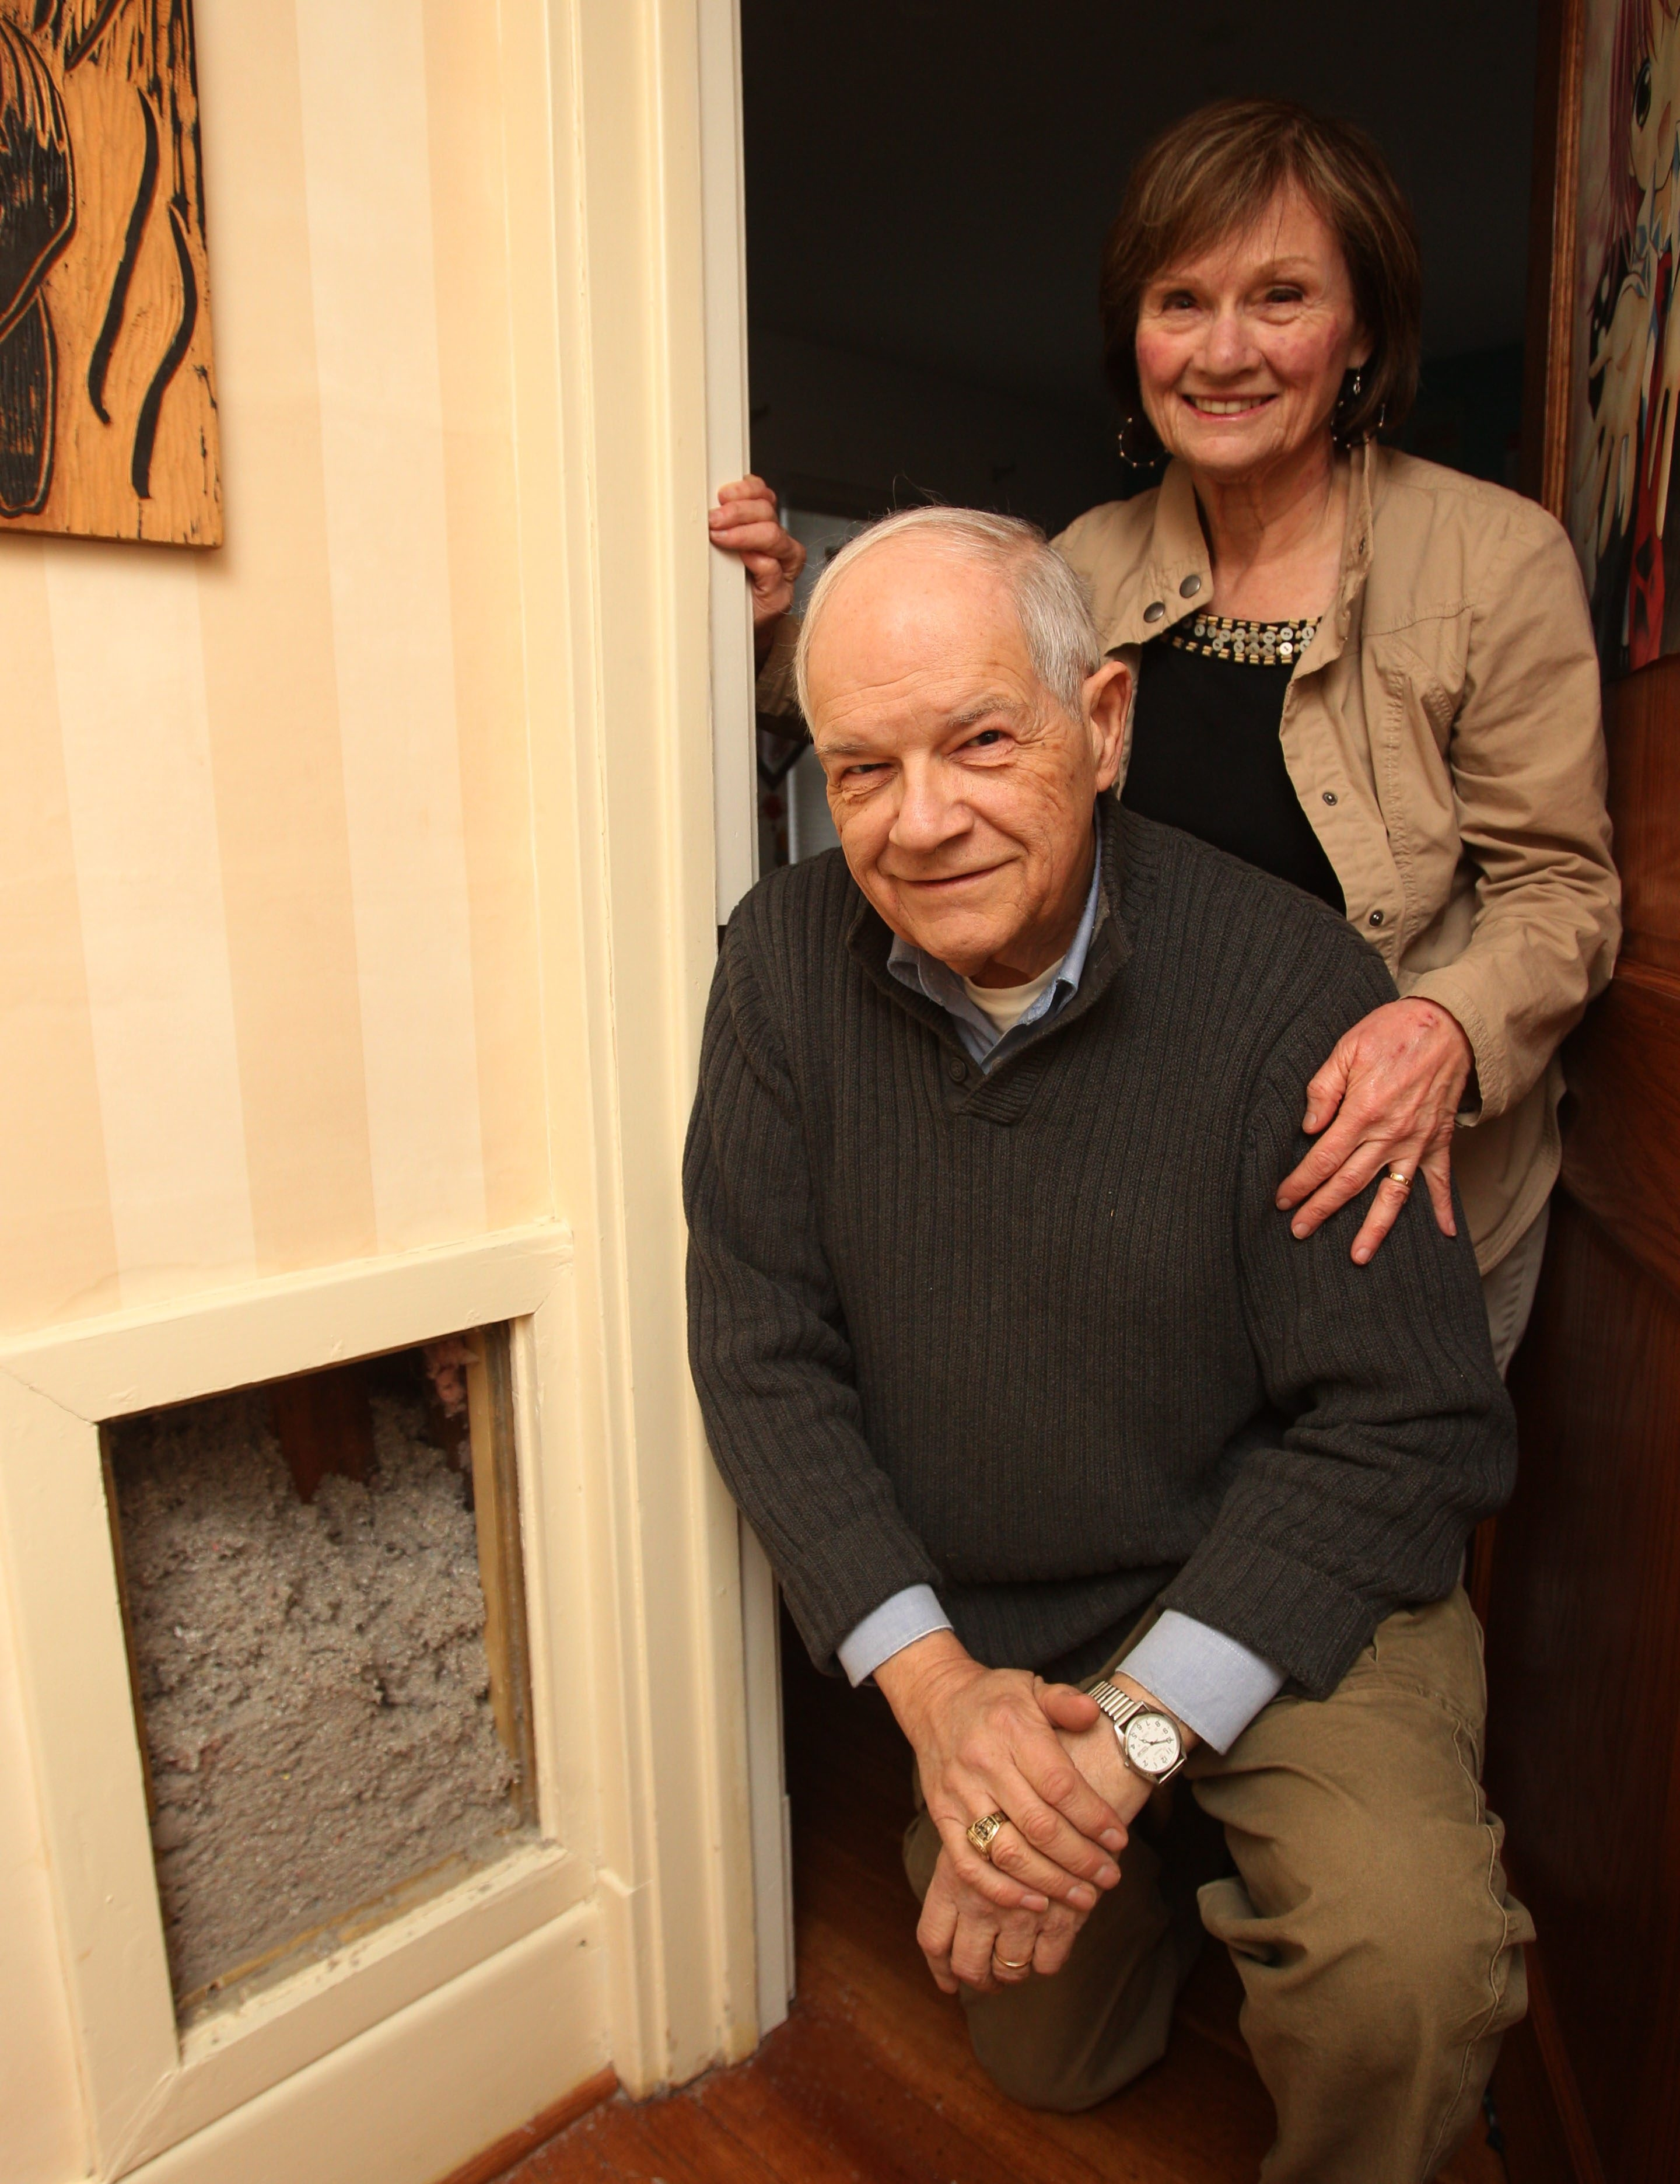 Denis and Mary Uminski show off some of the wood cellulose insulation that was blown into the walls, second-floor ceiling and attic floor of their Kenmore home through a state program.